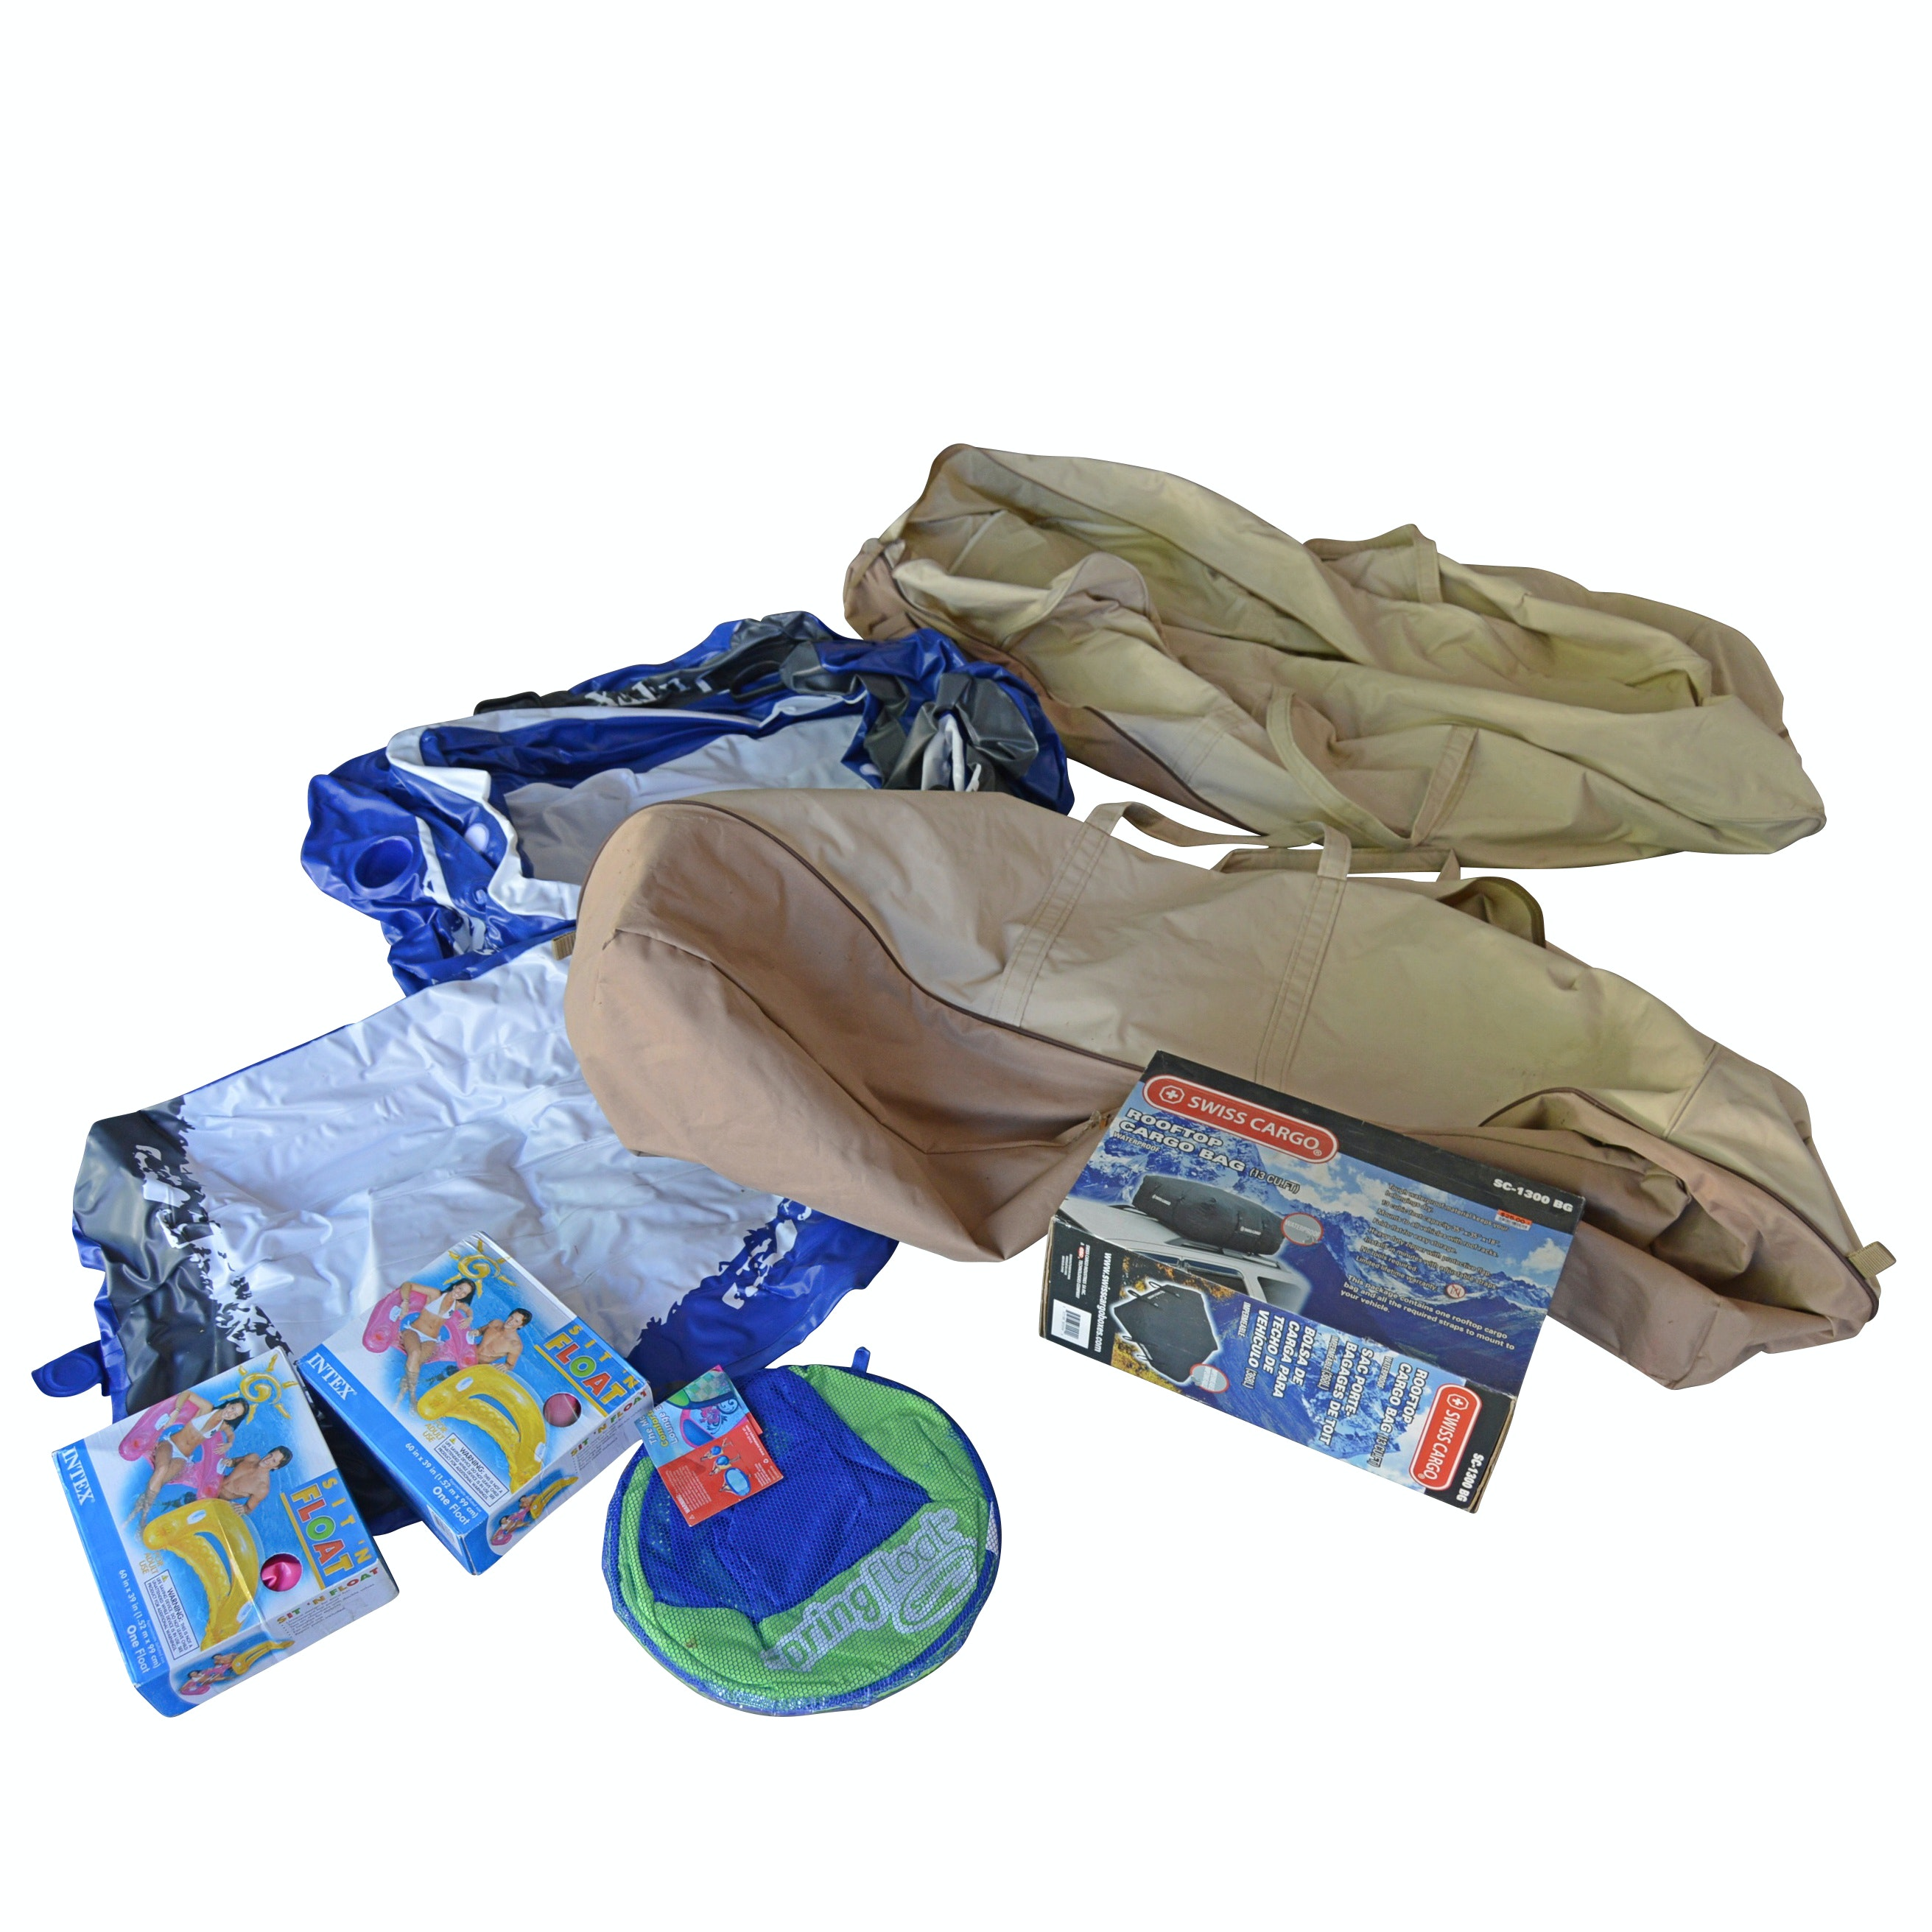 Canvas Storage Bags, Water Floats, Inflatable Rafts, Car Cargo Bag